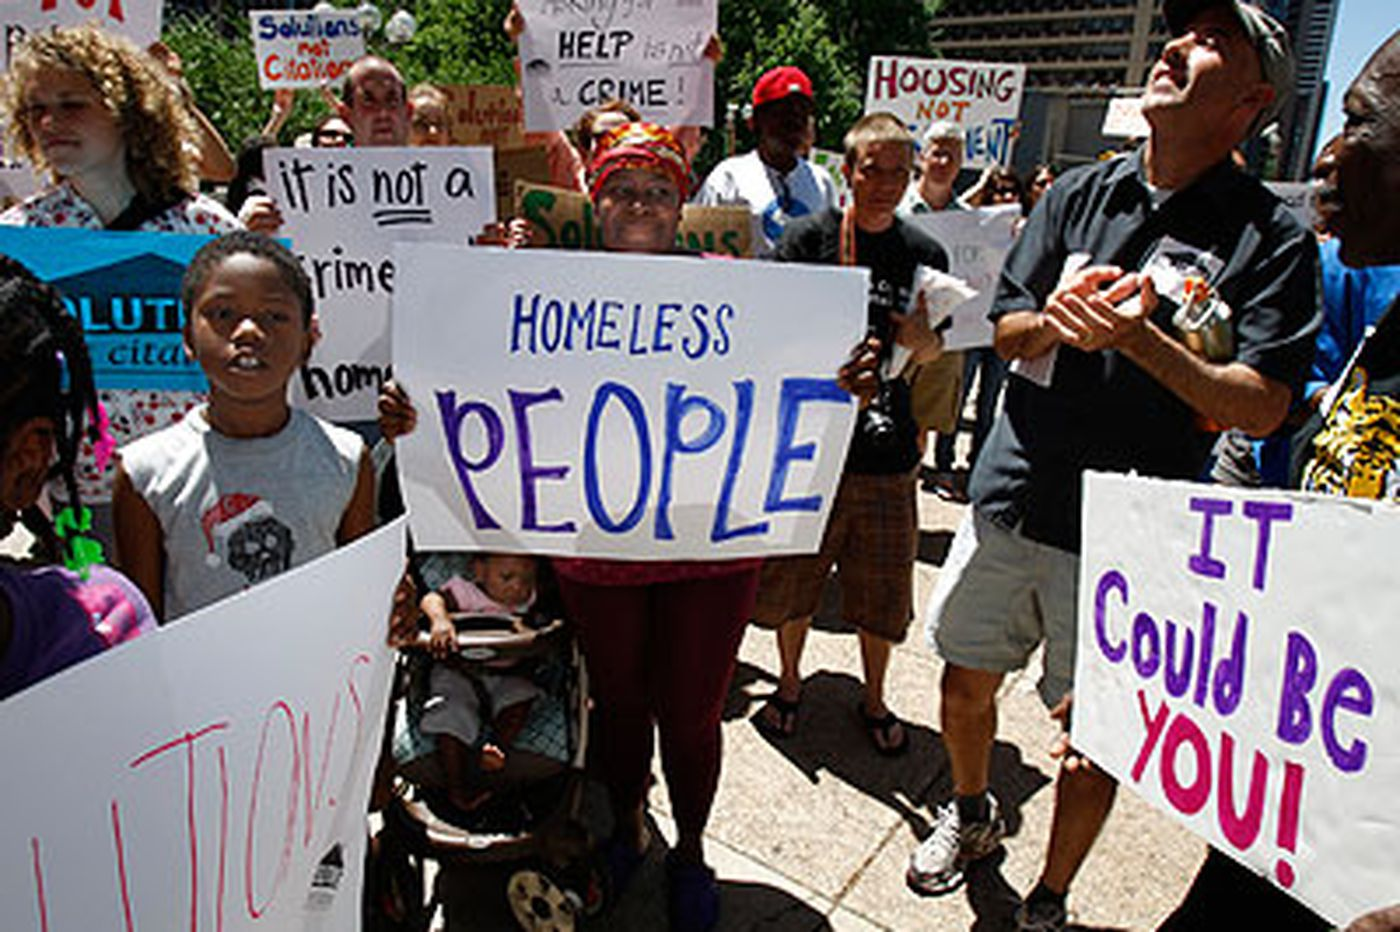 Protest blasts plan to crackdown on homeless